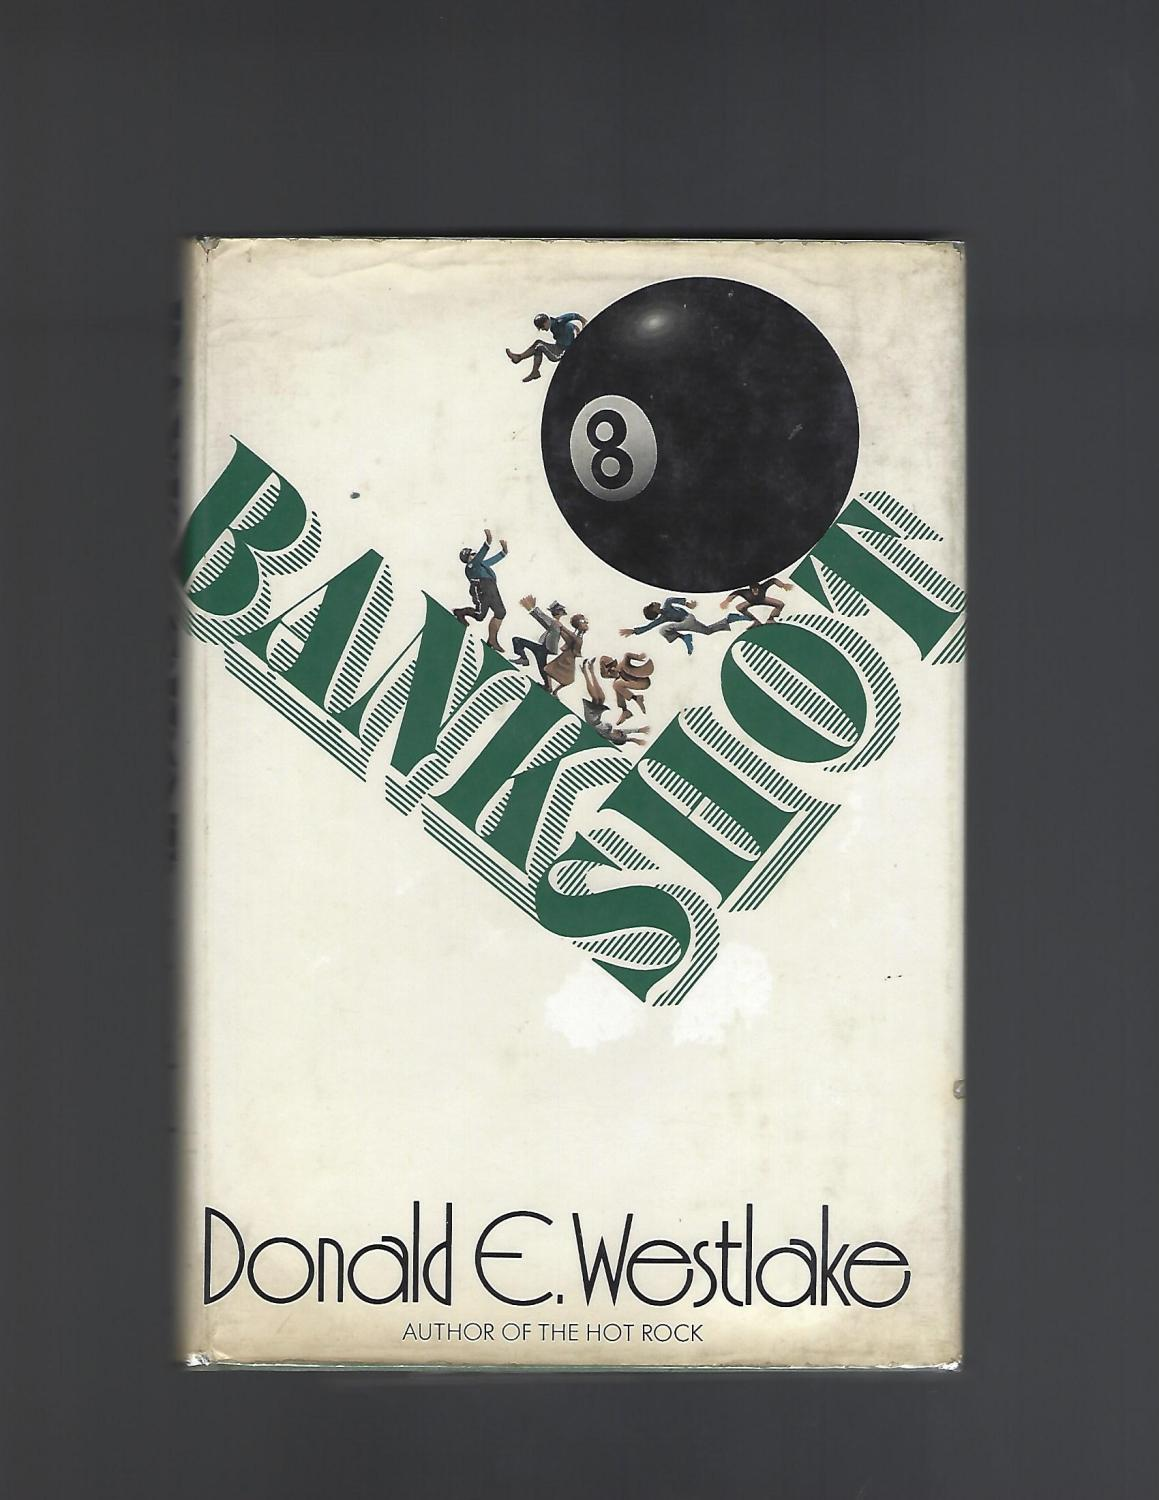 Bank Shot Westlake, Donald E. Hardcover